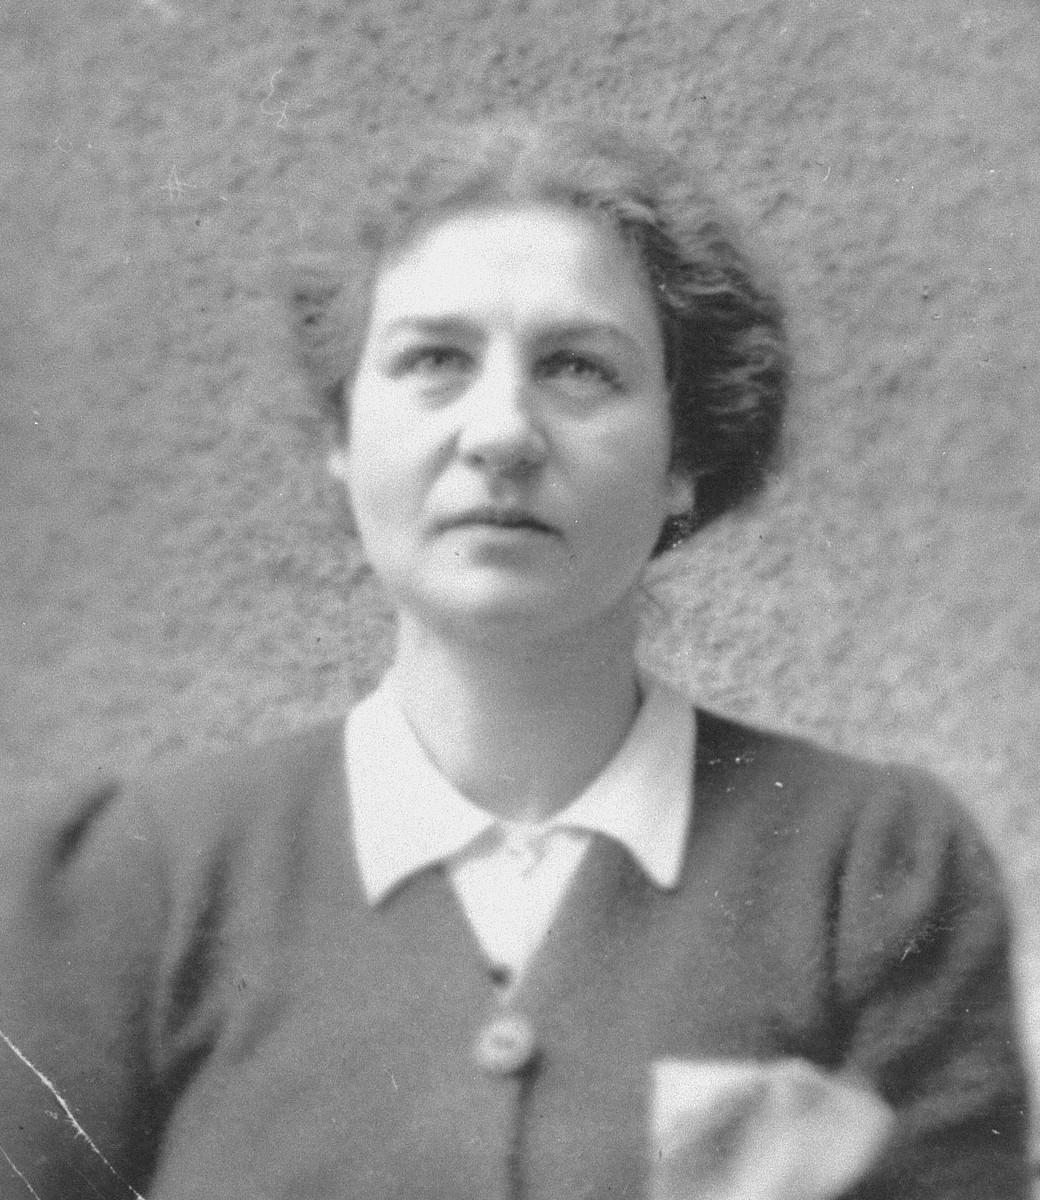 Portrait of the Austrian/German Jewess, Agnes Feigl, that was pasted in her son Peter's wartime journal.